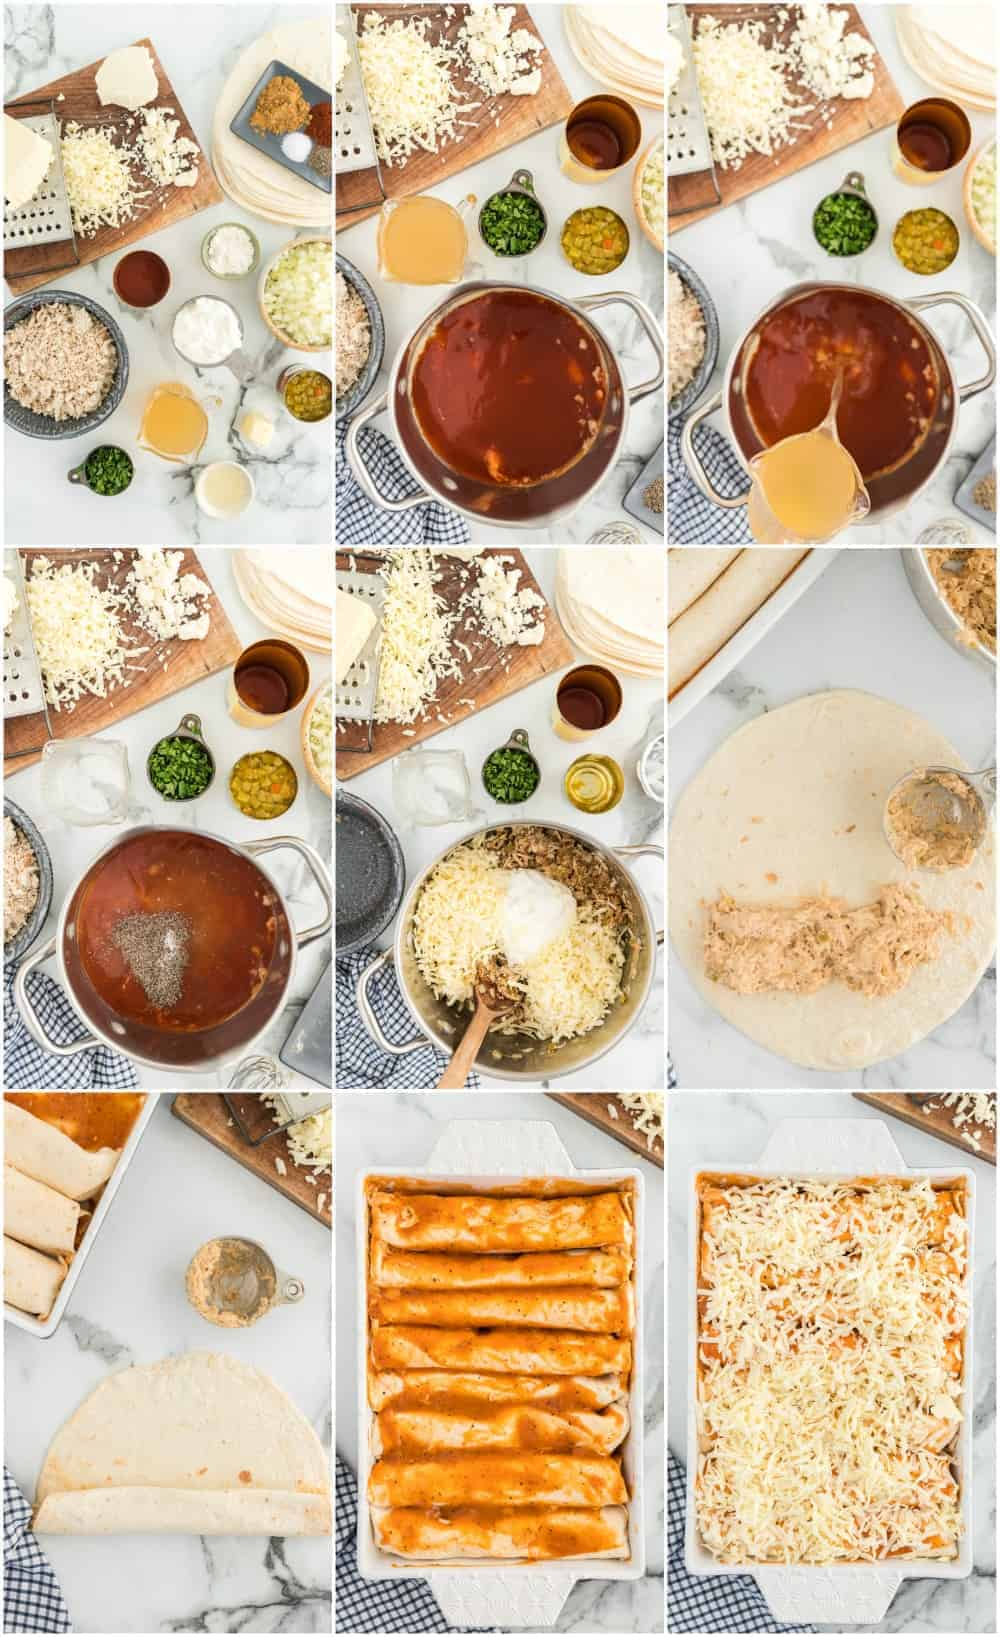 step by step photos for how to make shredded chicken enchiladas